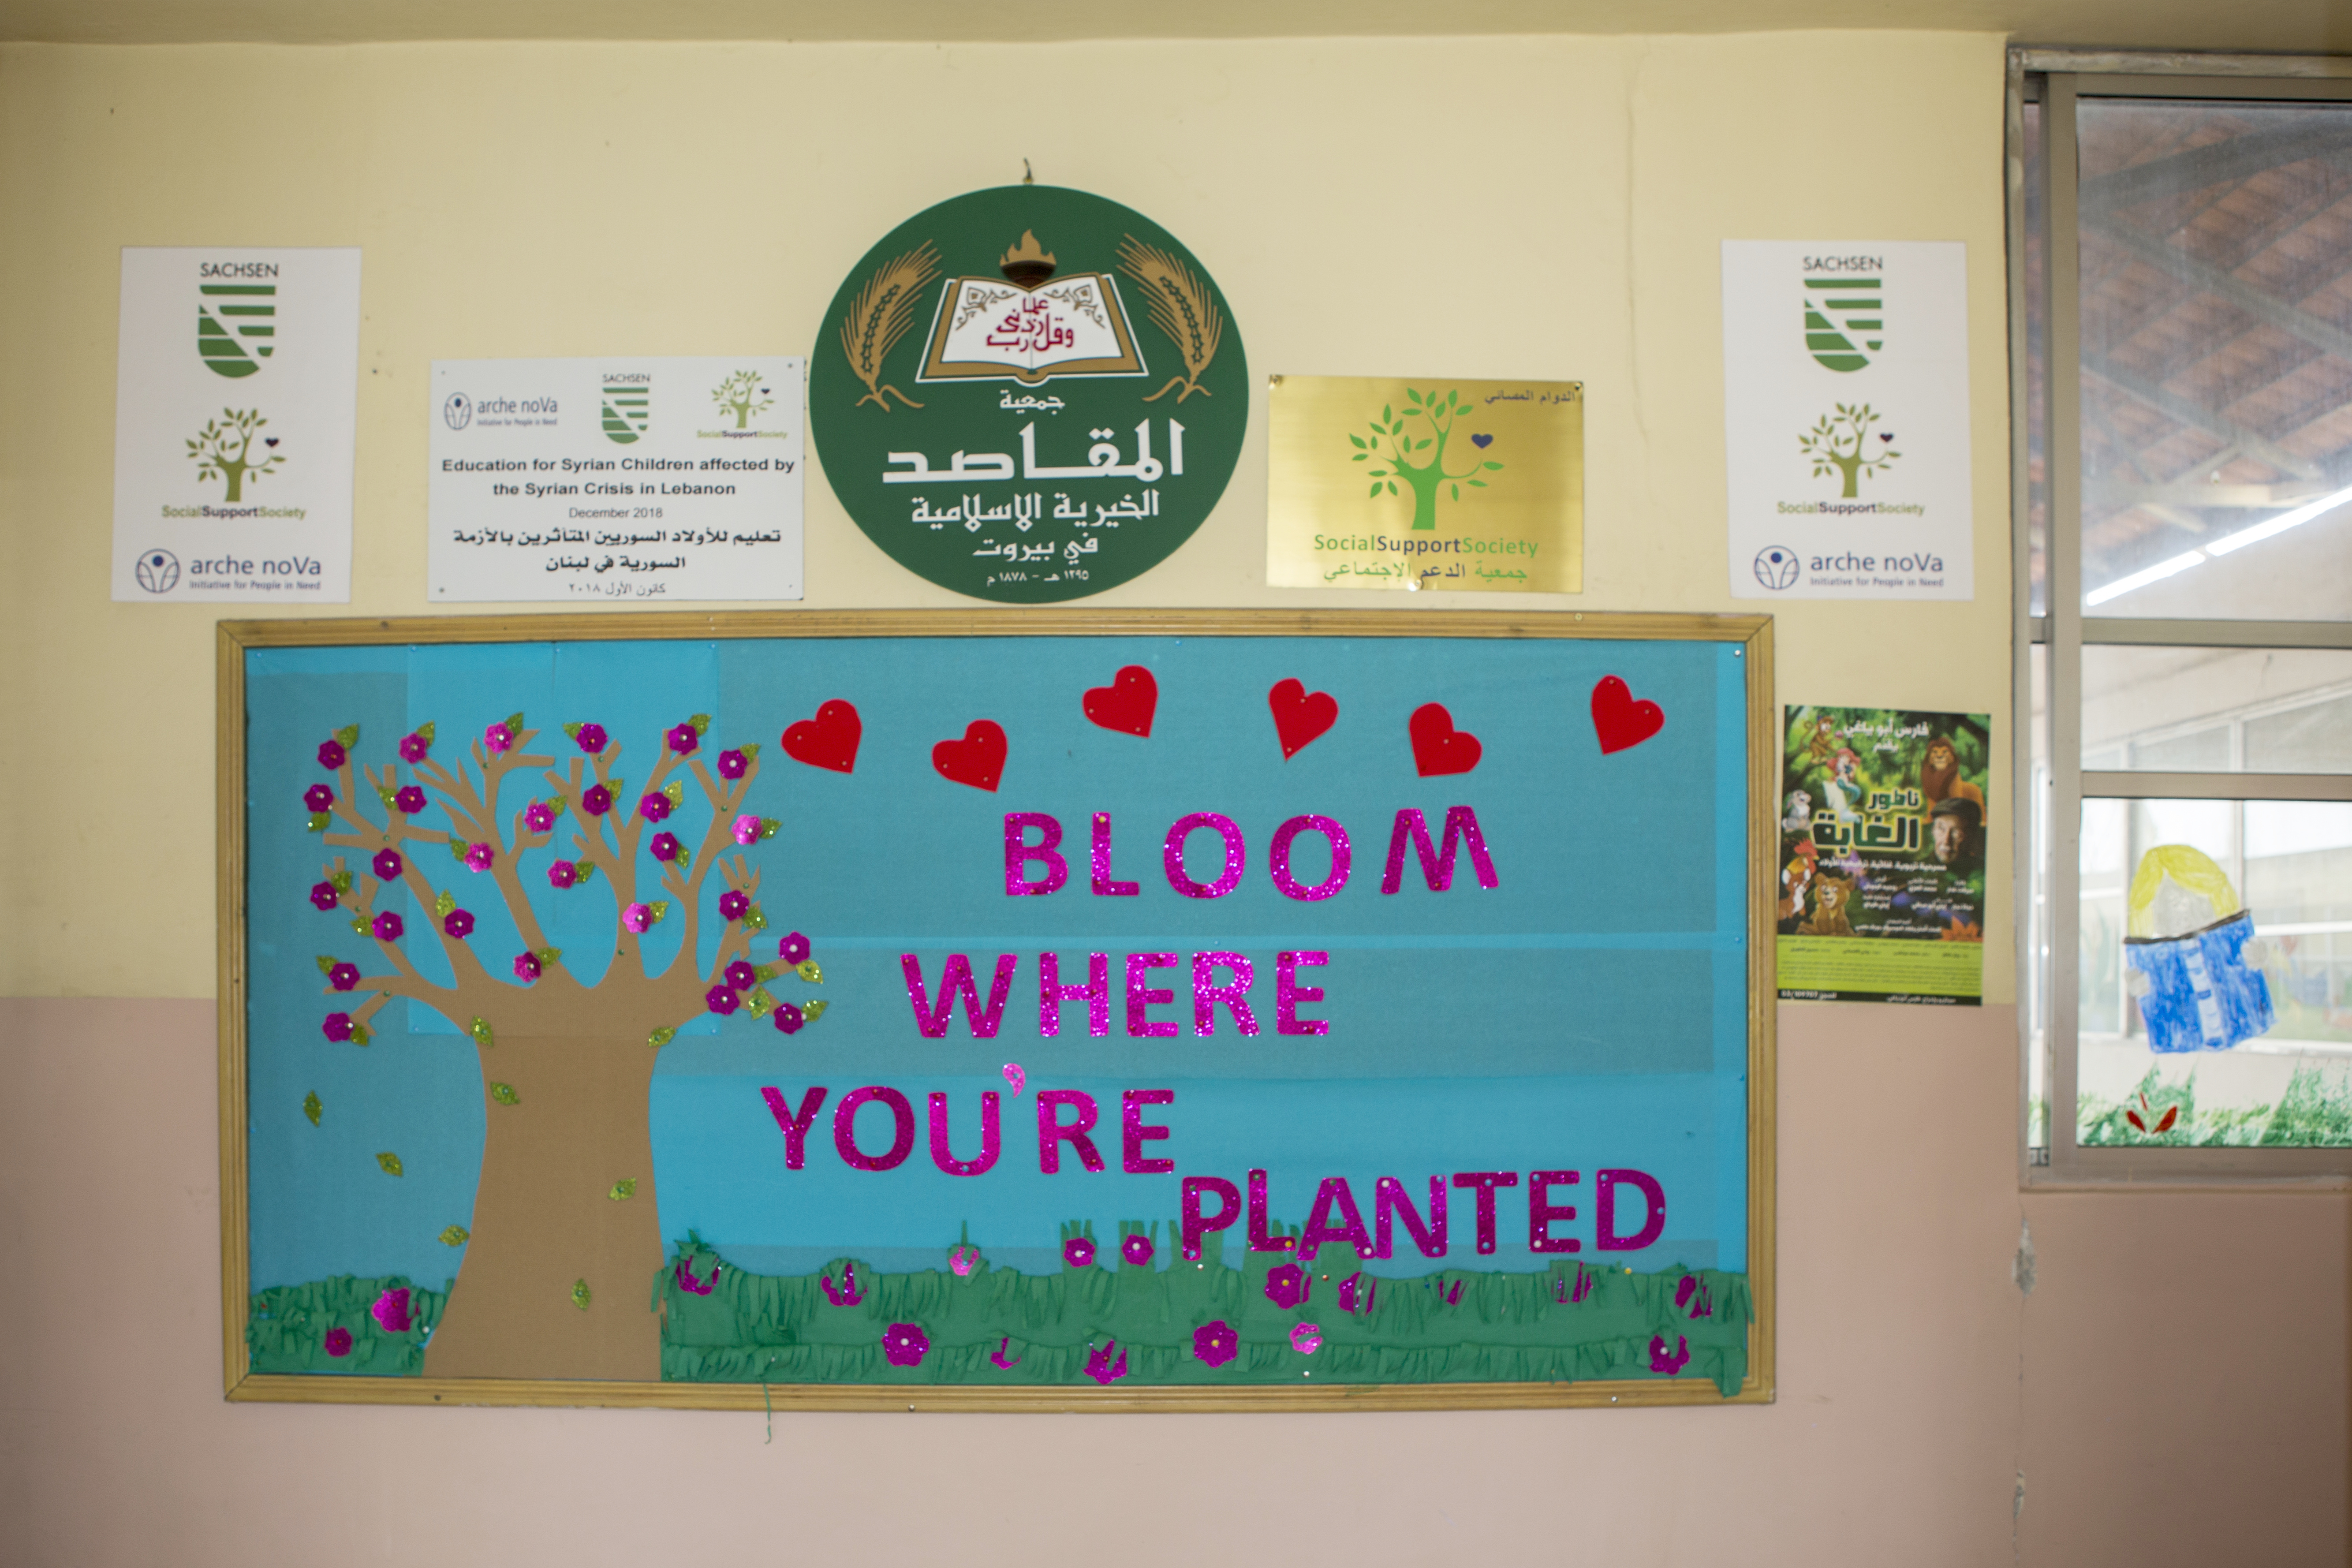 a poster with a greeting and logos of the project partners on a school wall